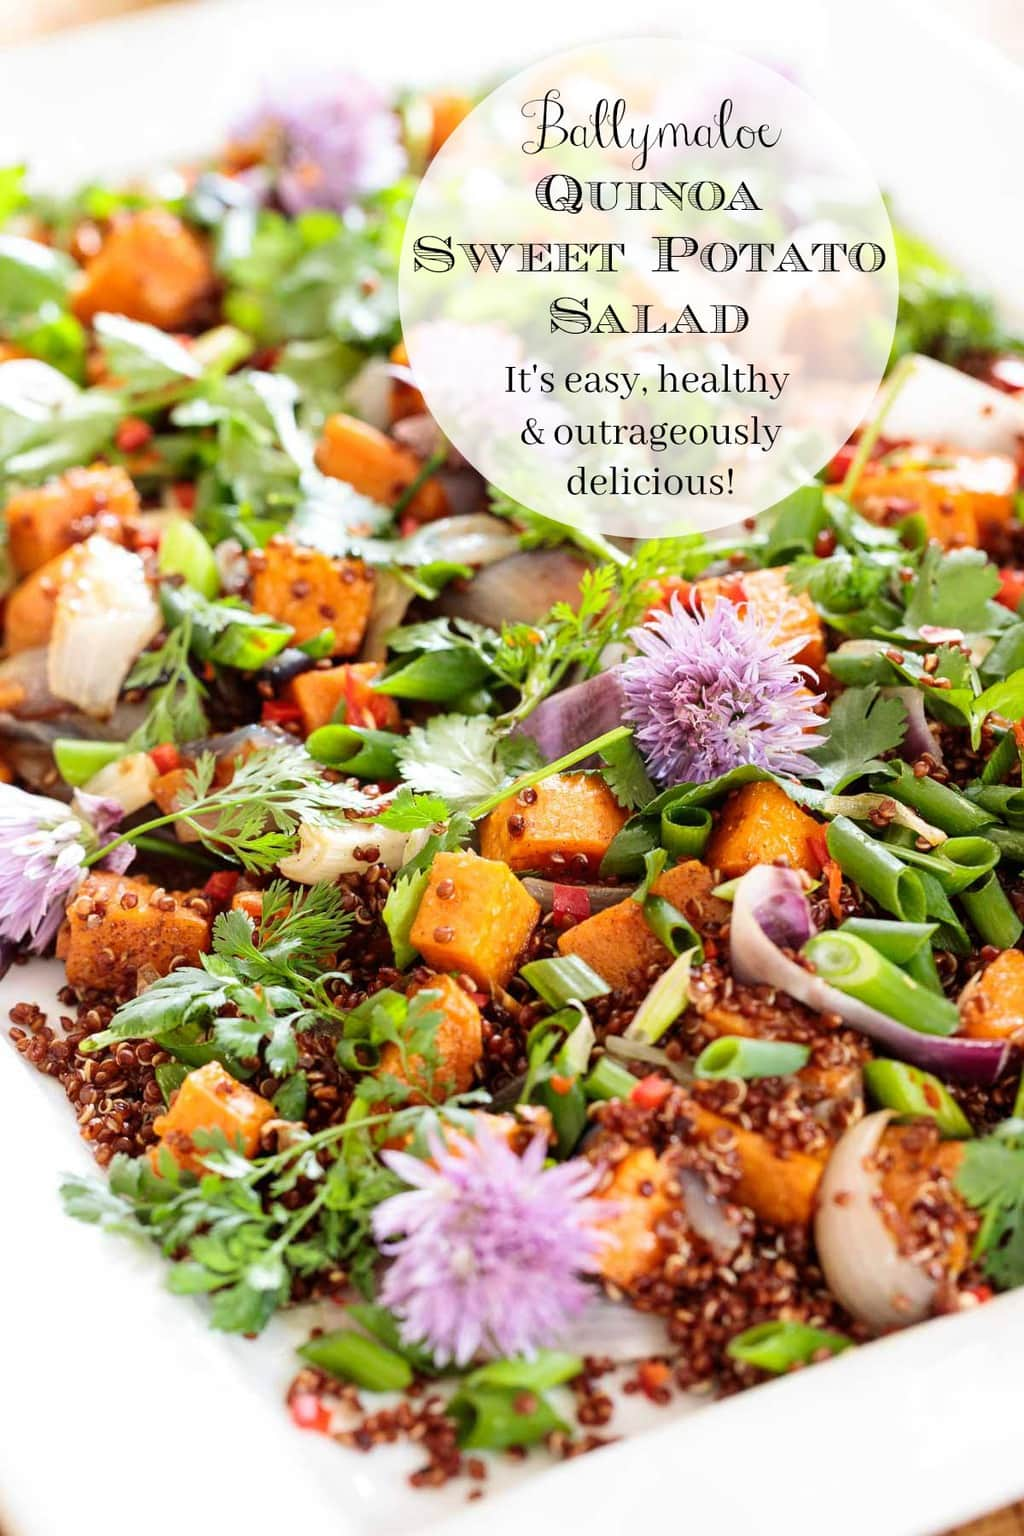 This Asian-inspired, Quinoa Sweet Potato Salad is super healthy, can be prepped ahead and simply bursts with bright, fresh, delicious flavor! #quinoasalad, #sweetpotatosalad, #makeaheadsalad, #healthysalad